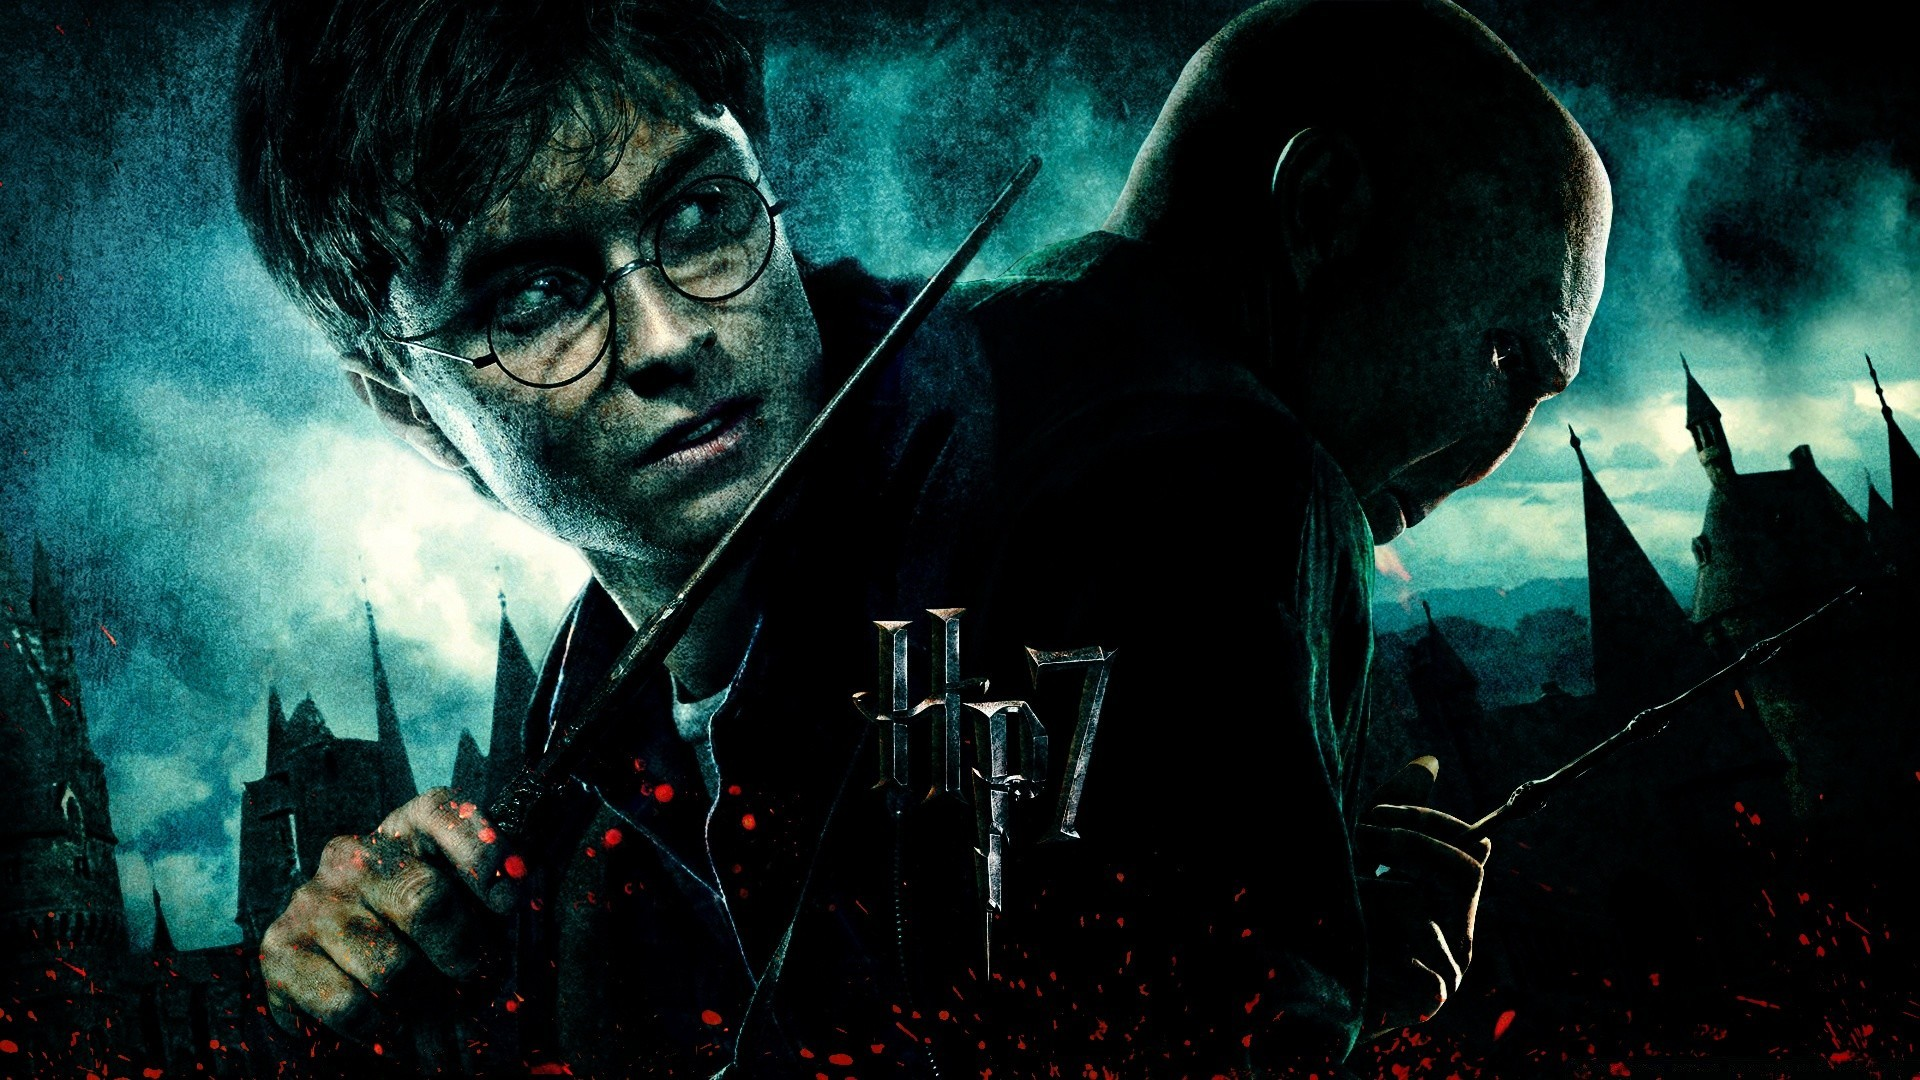 Harry Potter 7 Desktop Wallpapers For Free